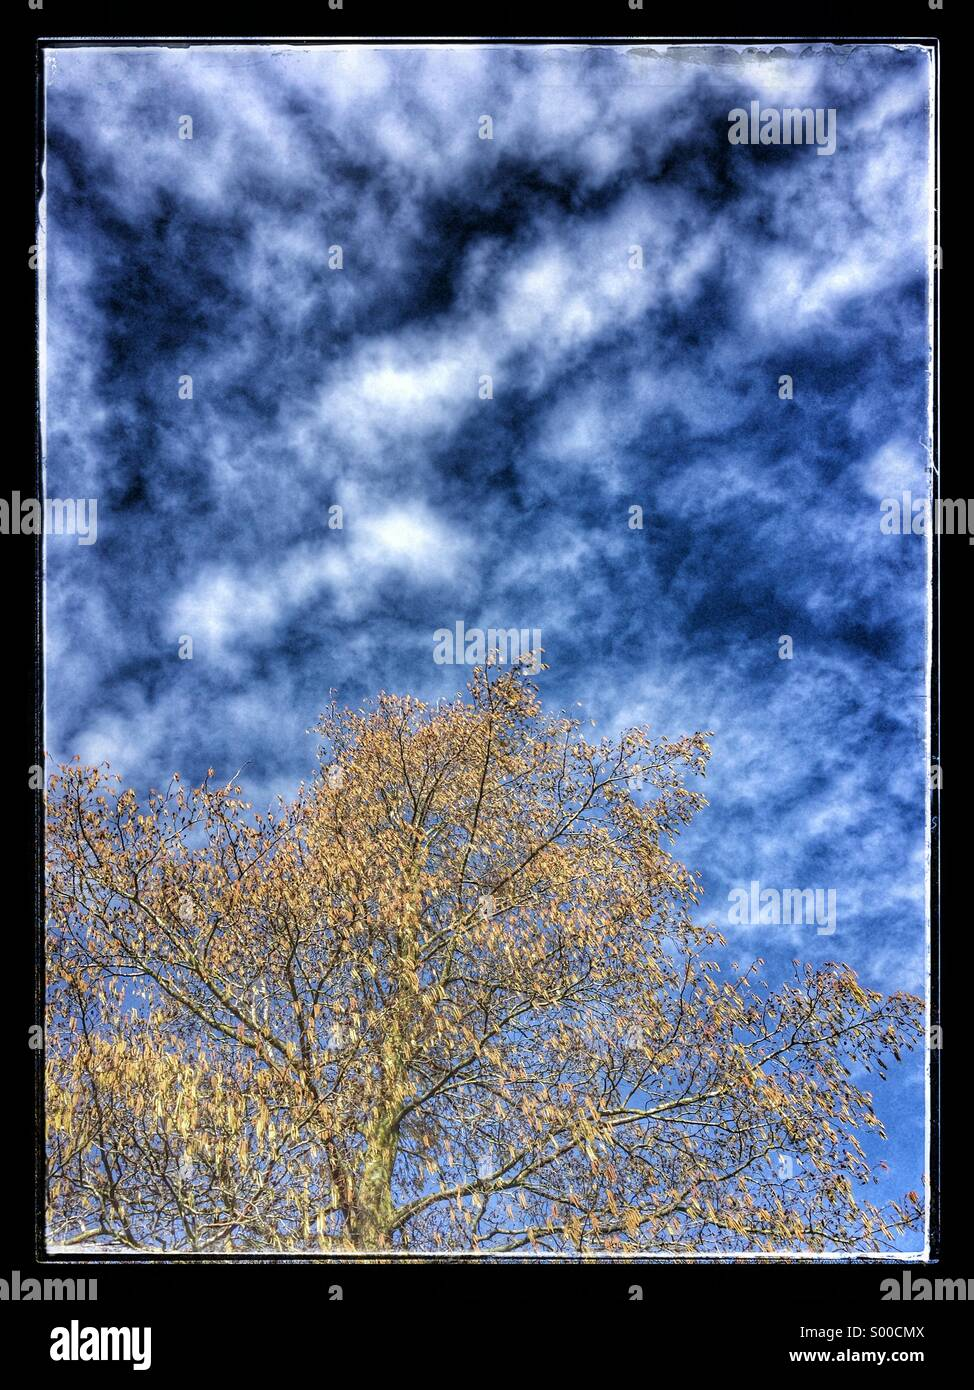 Willow Tree against vivid blue sky - Stock Image